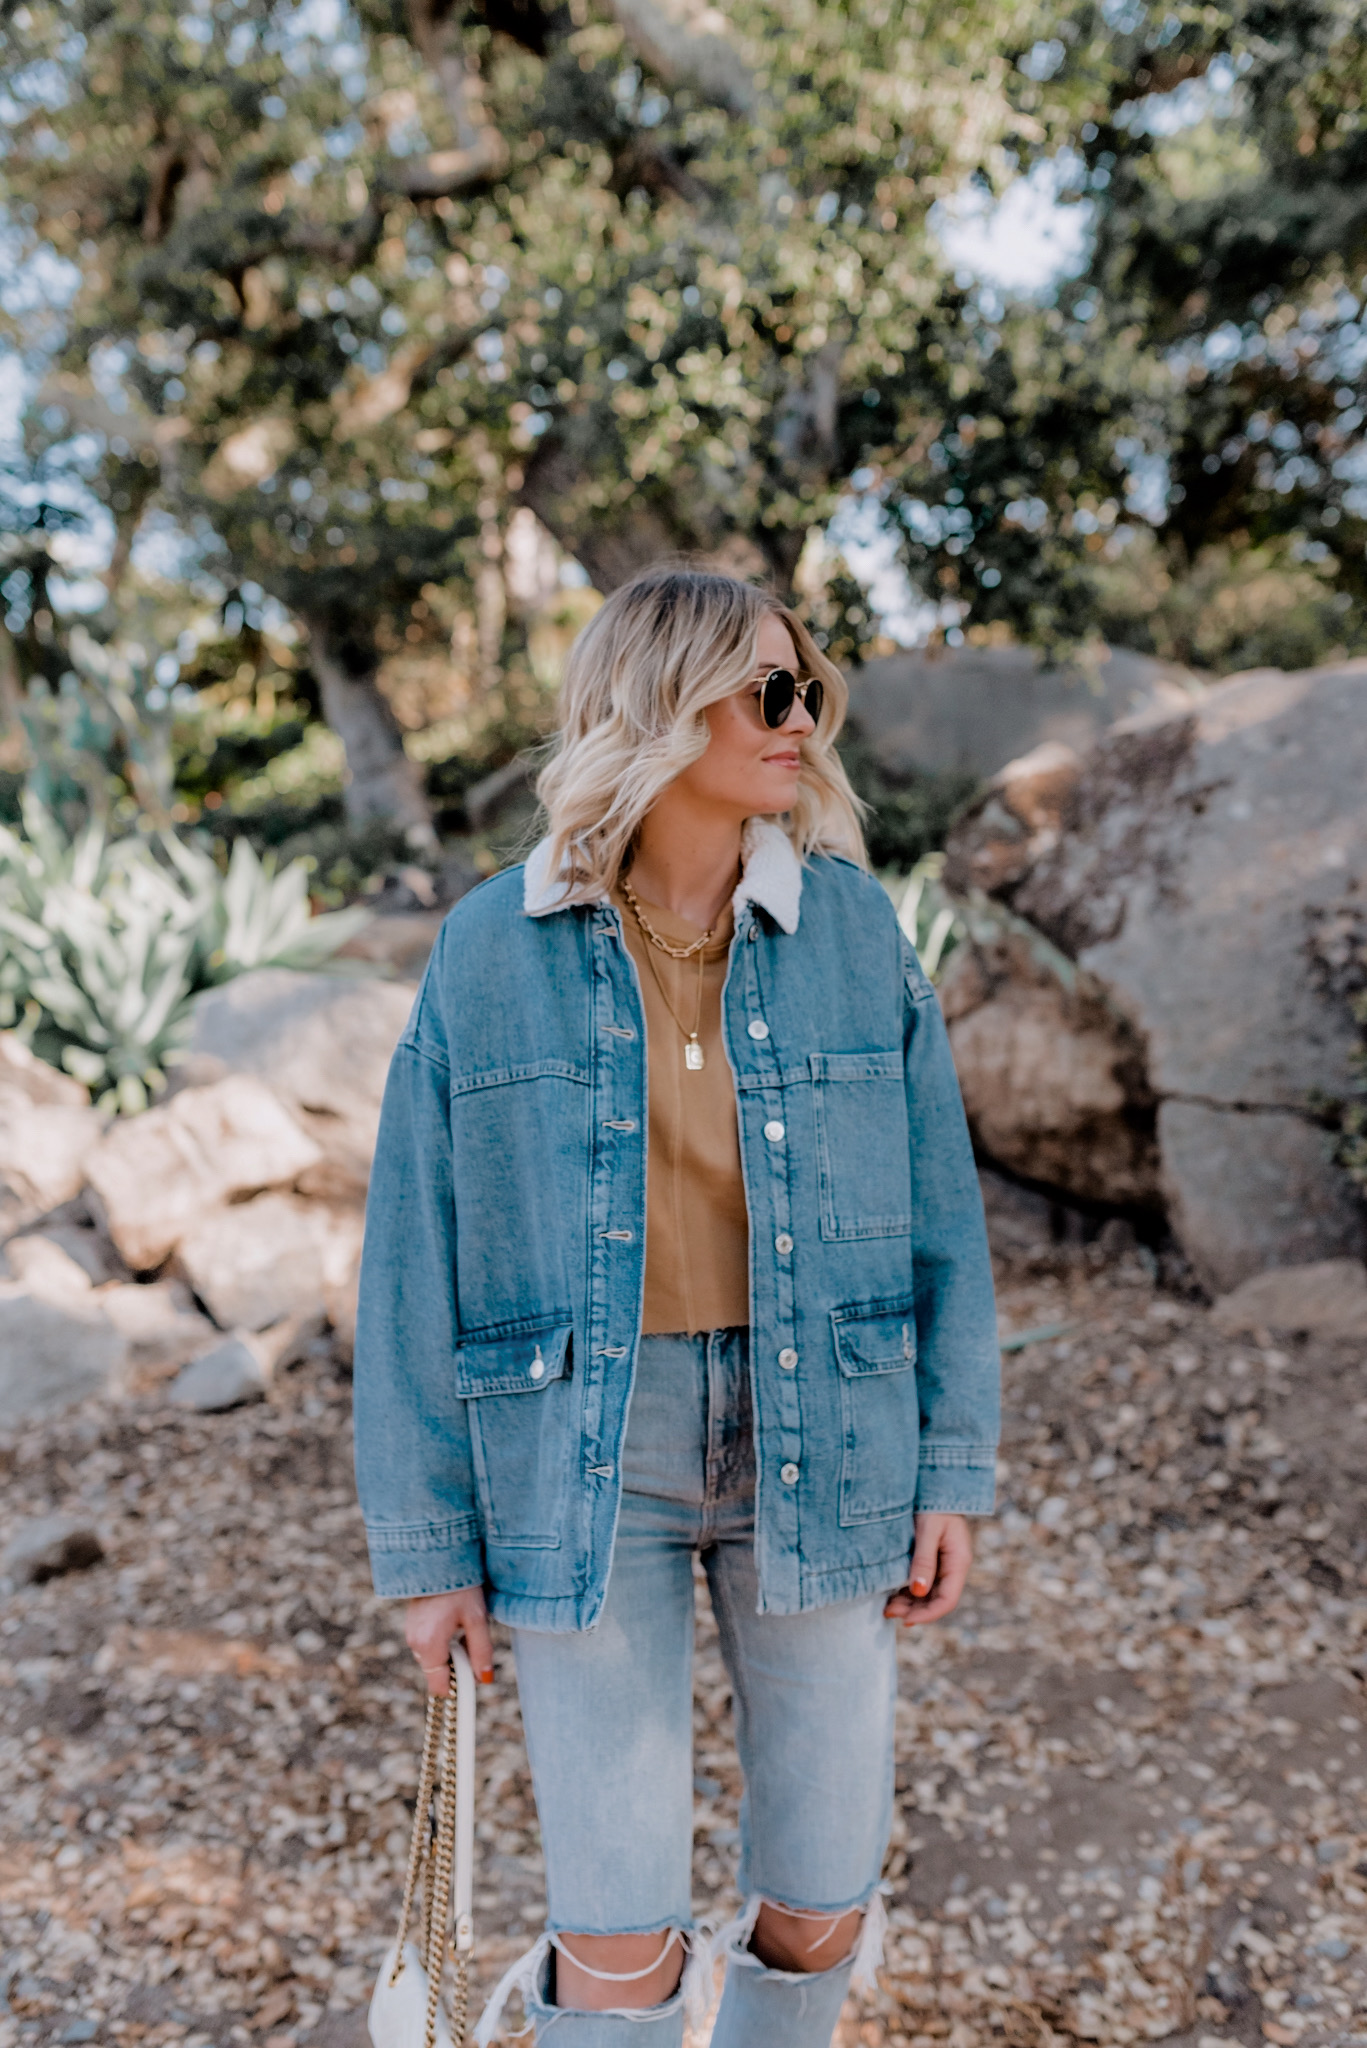 Casual Jackets by popular San Diego fashion blog, Navy Grace: image of a woman wearing a casual oversized denim jacket, Top Shop Double Ripped Mom Jeans,GOLDEN GOOSE Beige & Brown Horsy Superstar Sneakers, JCPenney Arizona Juniors Womens Crew Neck Long Sleeve Sweatshirt,Small Matelassé Leather Shoulder Bag, and Ray-Ban 51mm Aviator Sunglasses.